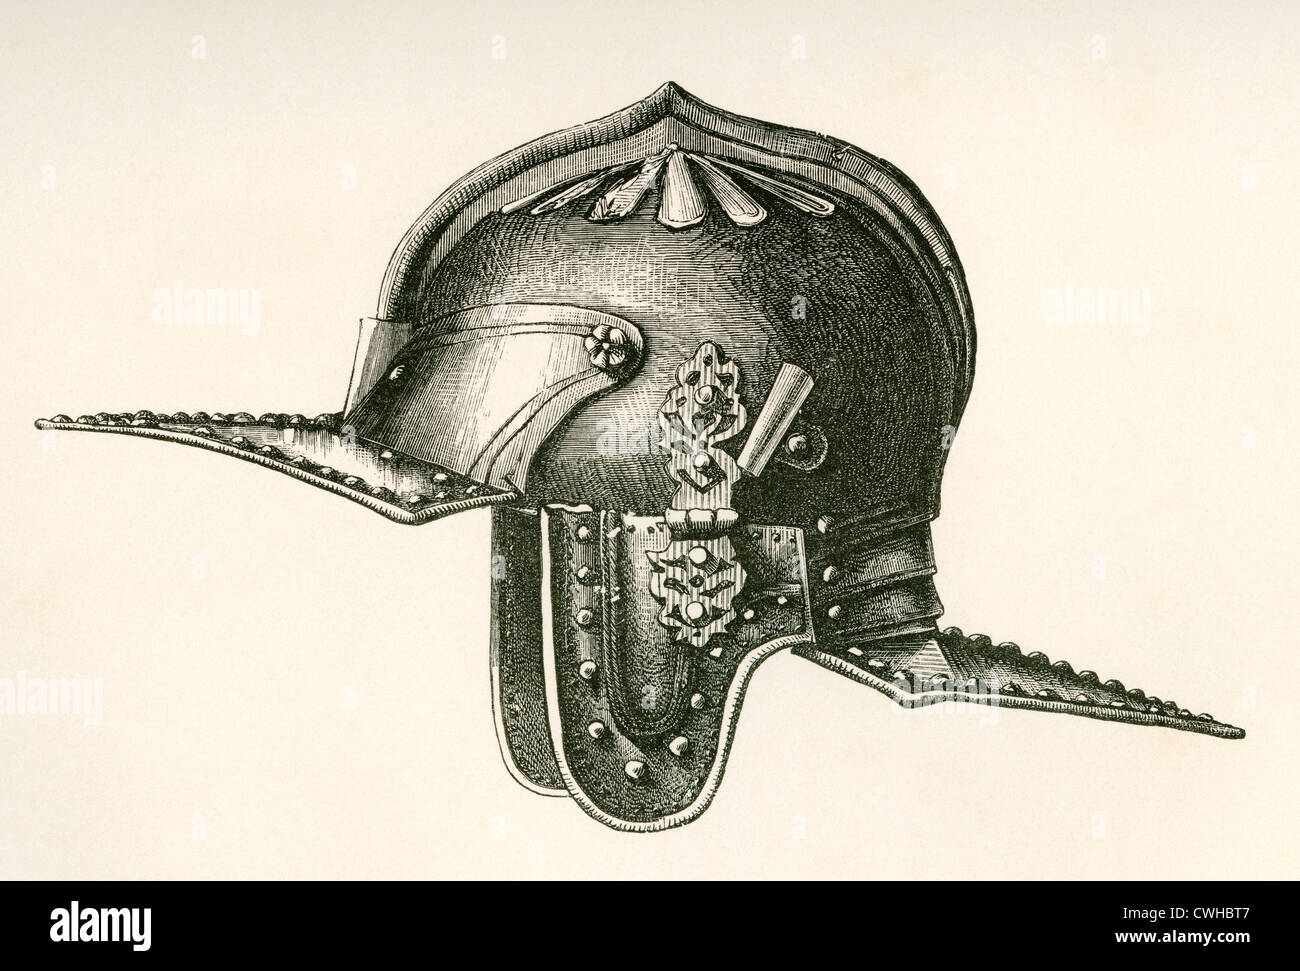 17th century helmet, said to have belonged to Oliver Cromwell. - Stock Image